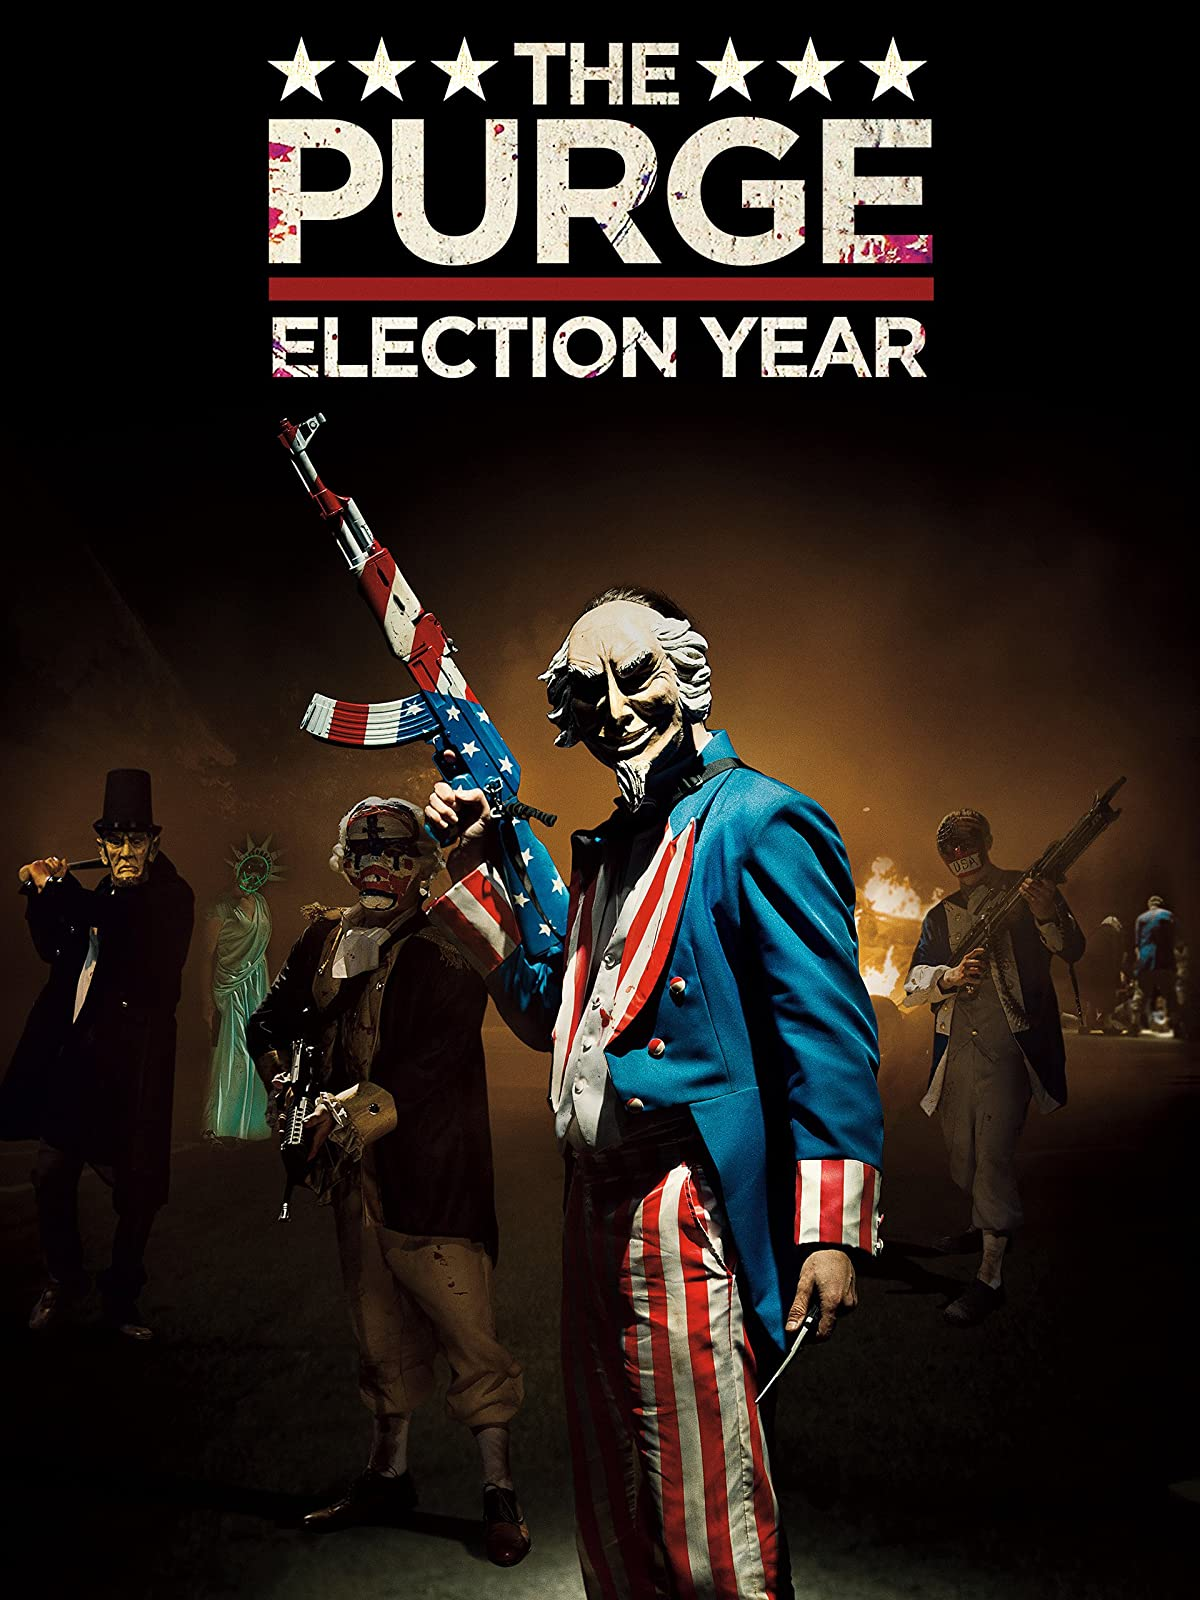 the purge anarchy full movie free 123movies